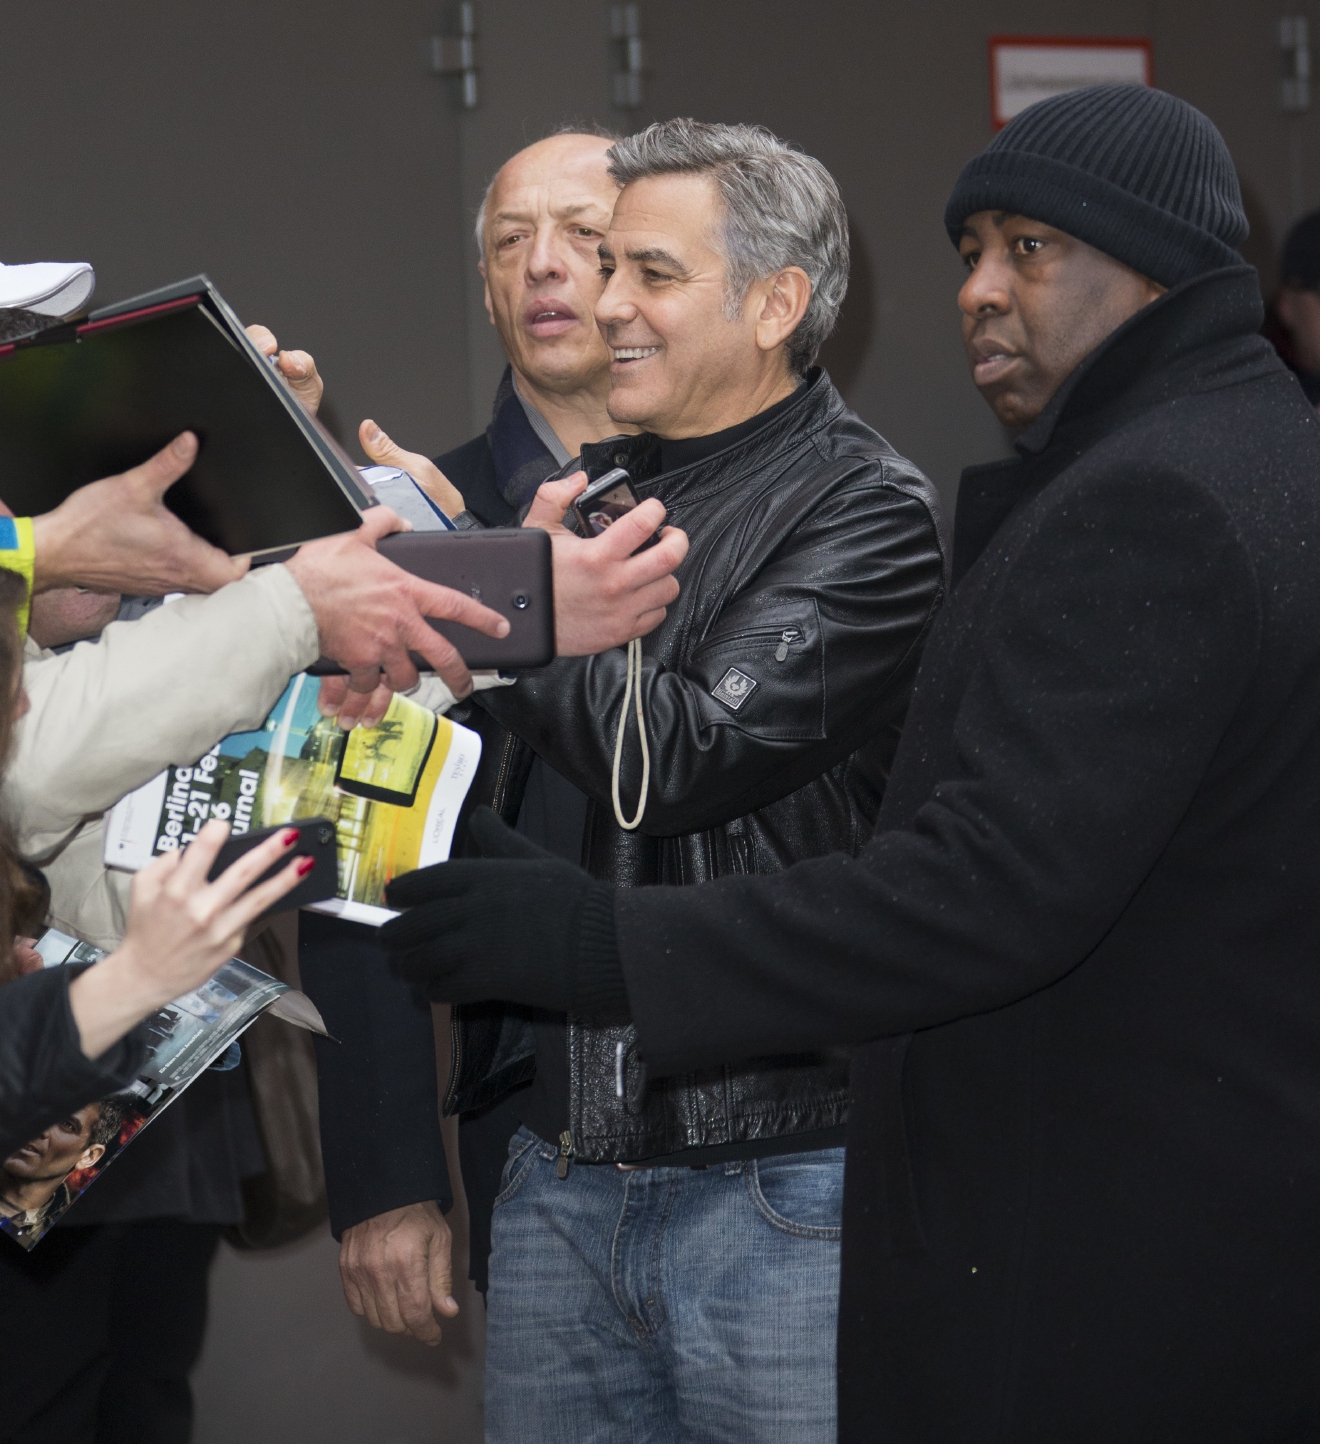 66th Annual International Berlin Film Festival (Berlinale) - 'Hail, Caesar! - Photocall Arrivals  Featuring: George Clooney Where: Berlin, Germany When: 11 Feb 2016 Credit: Brian Dowling/WENN.com